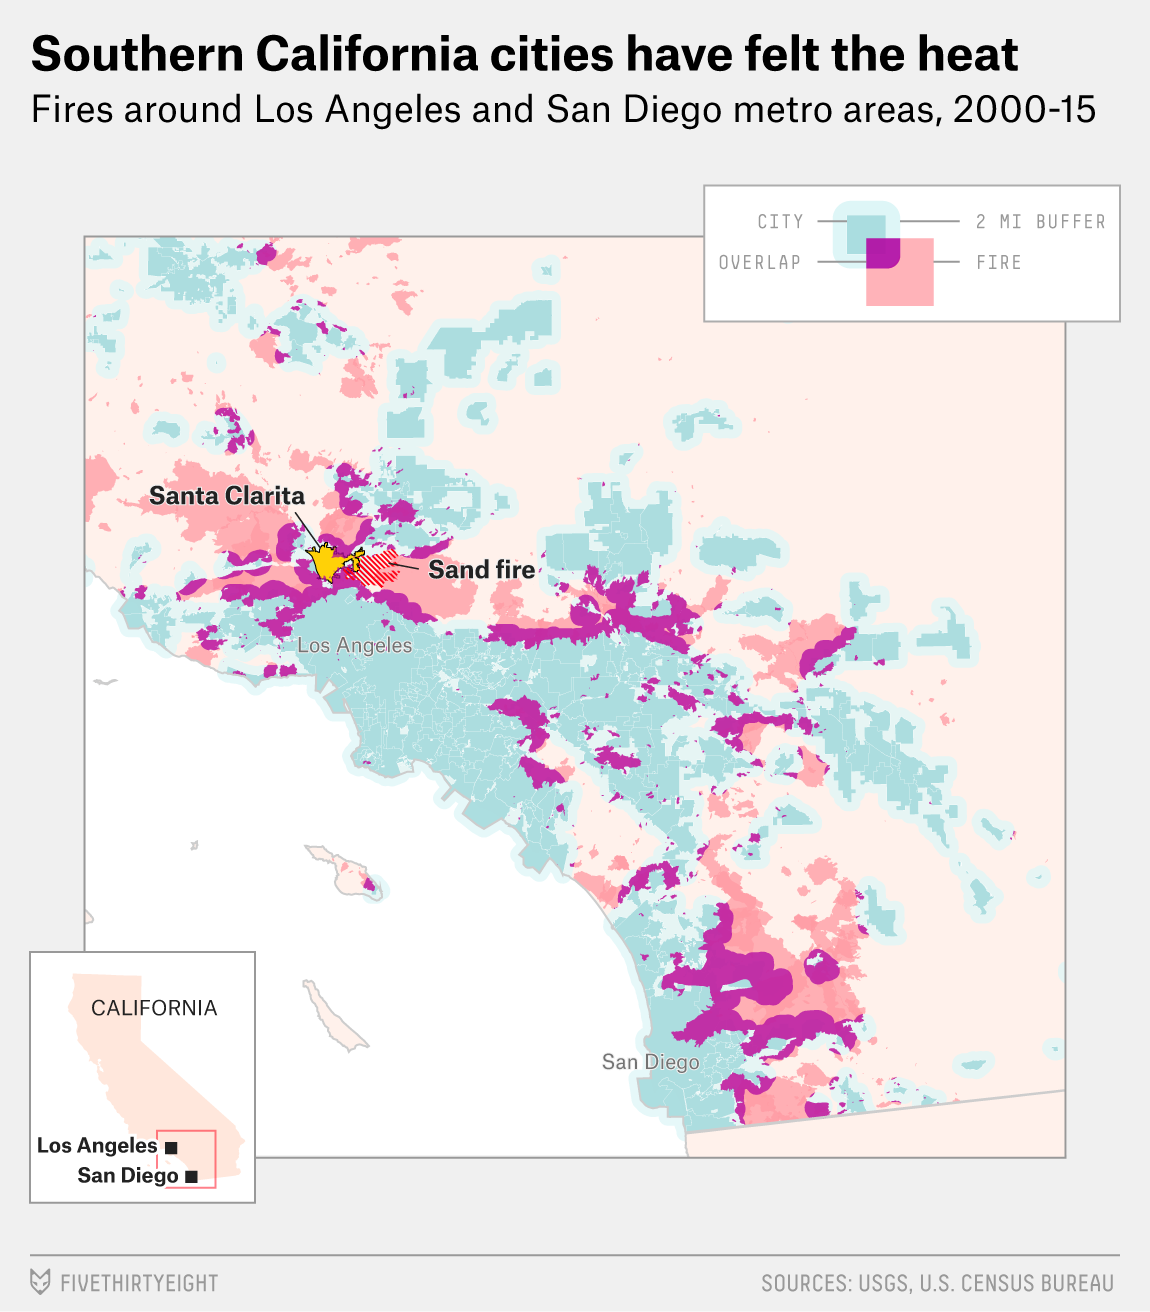 Cities In Southern California Can T Escape The Fire At Their Door